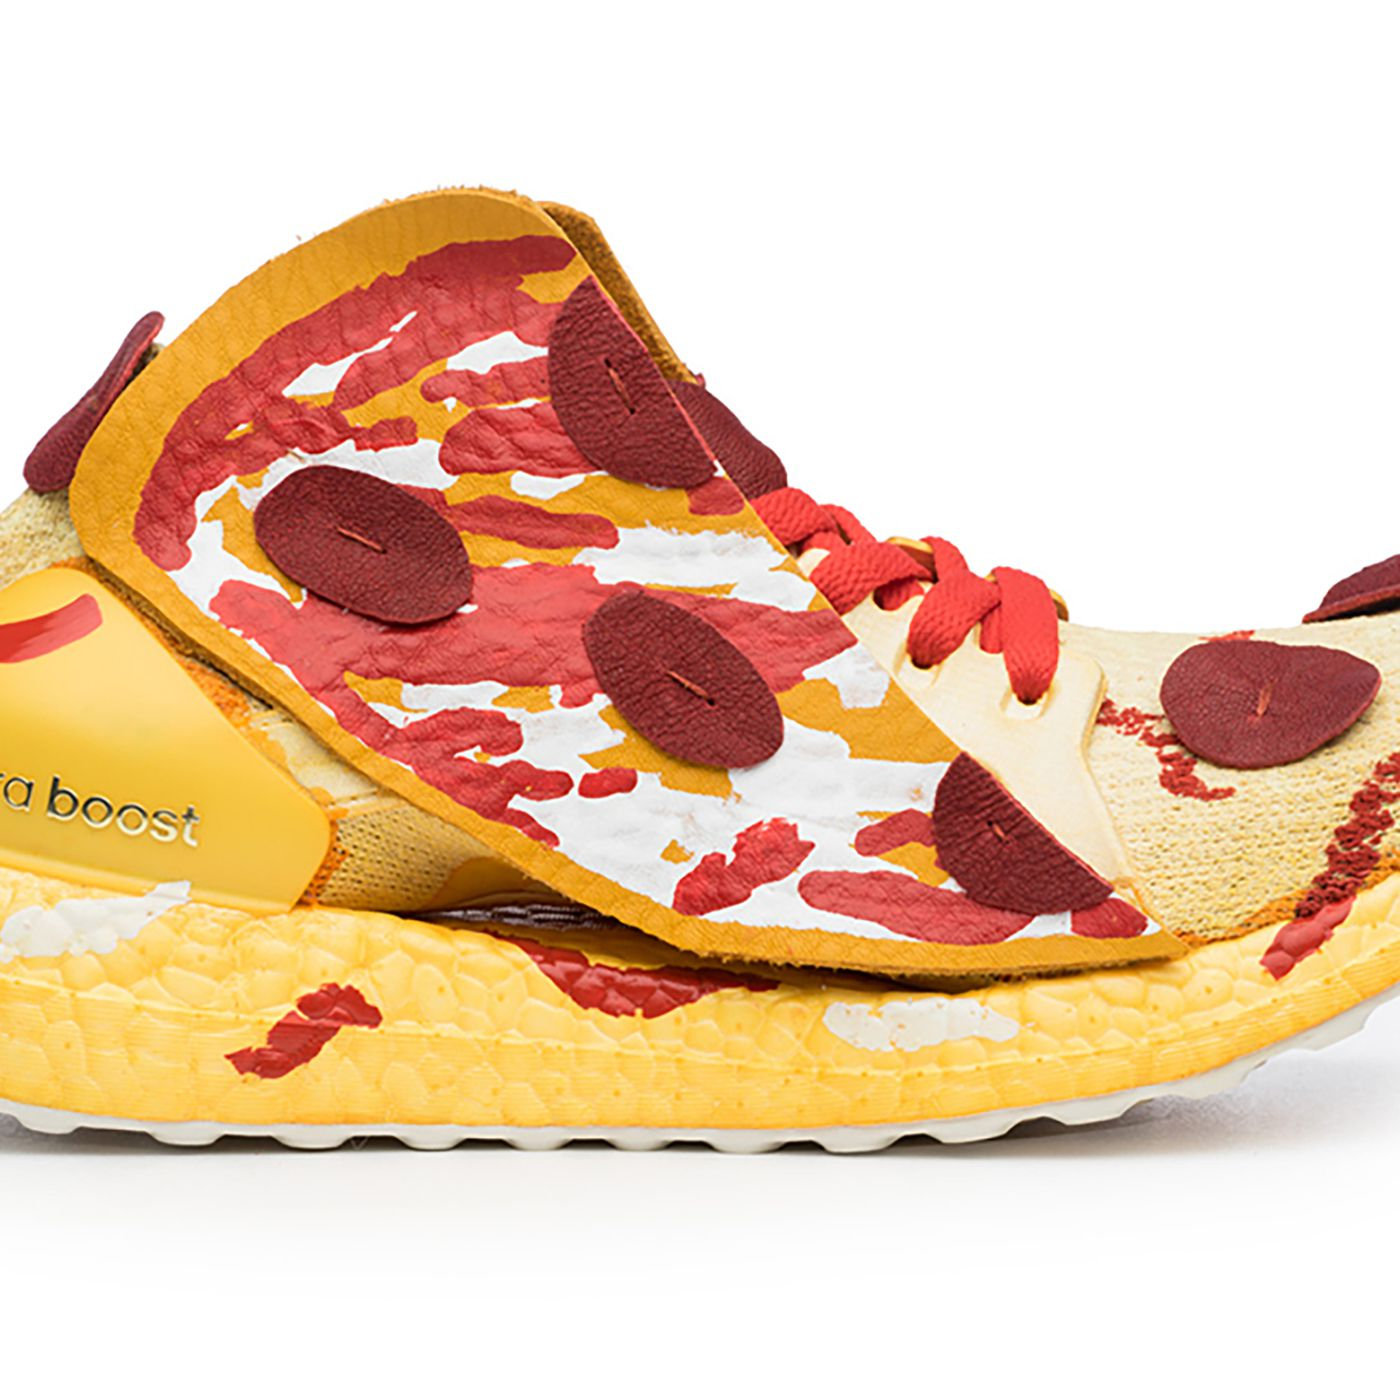 f866c01a1b These Are the Must-Have Shoes for Serious Food Obsessives - Eater